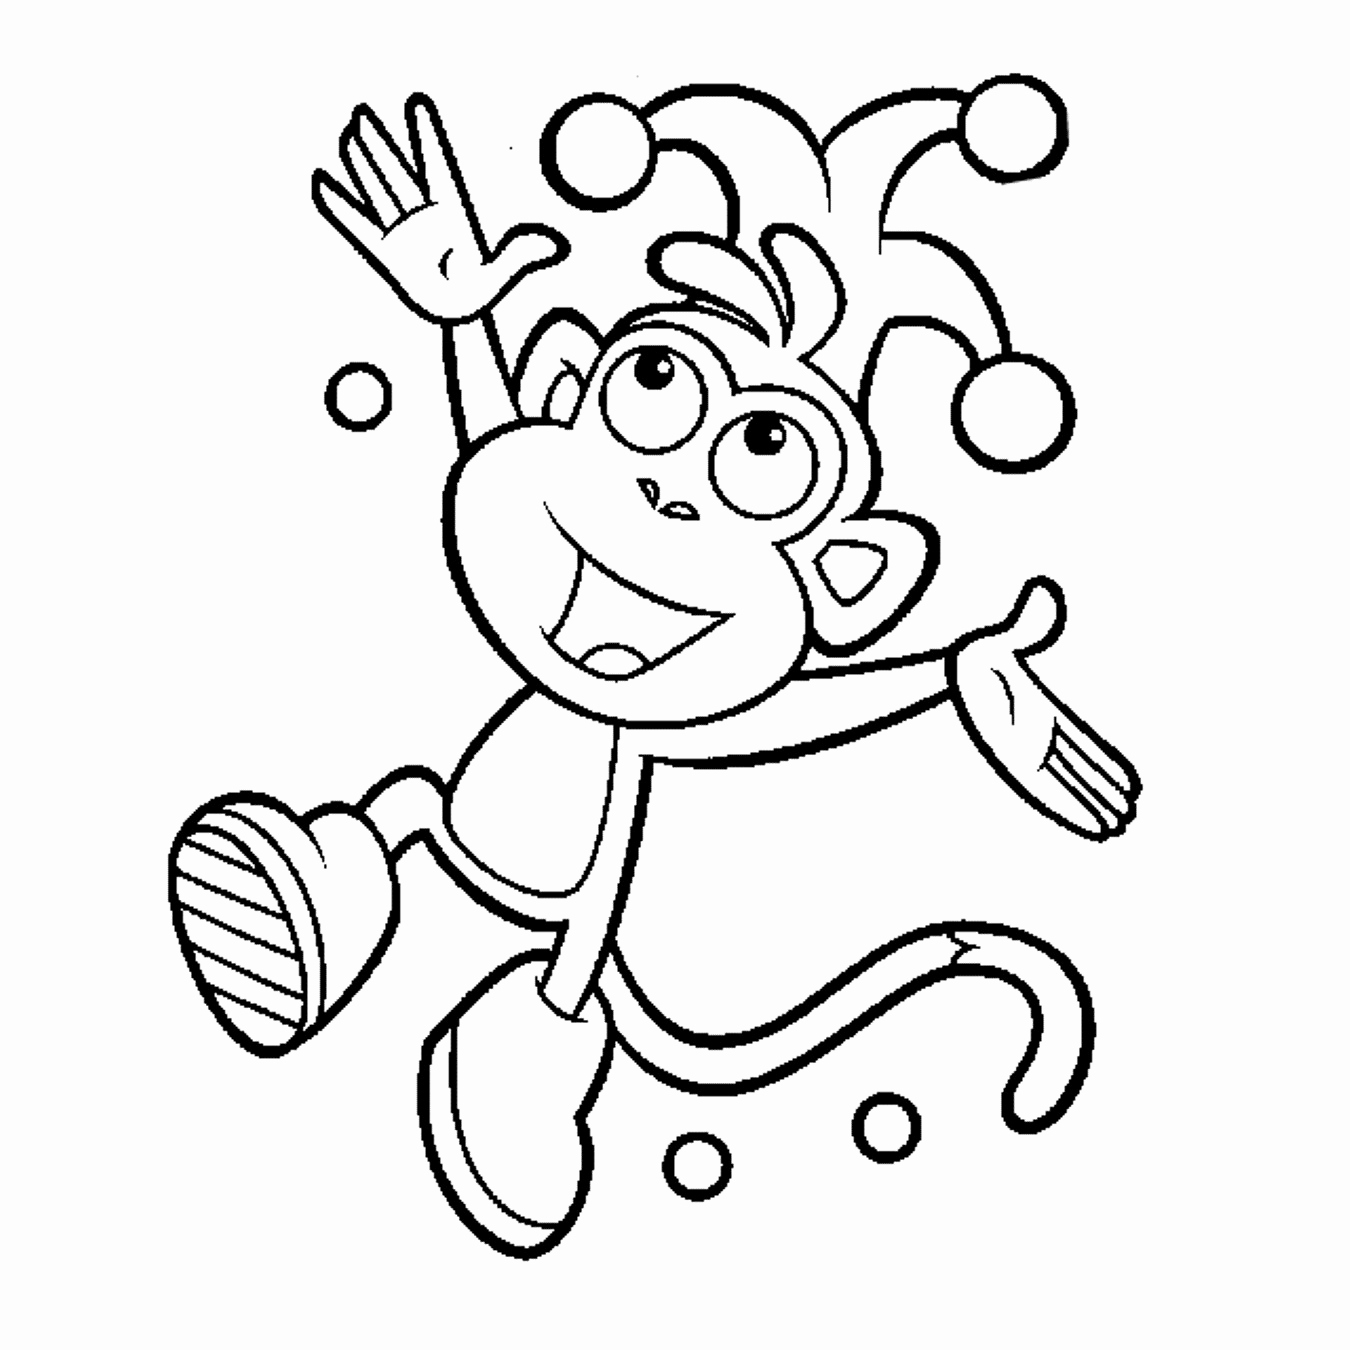 1350x1350 The Dora Boots And Tico Coloring Pages Trend Dora Coloring Pages